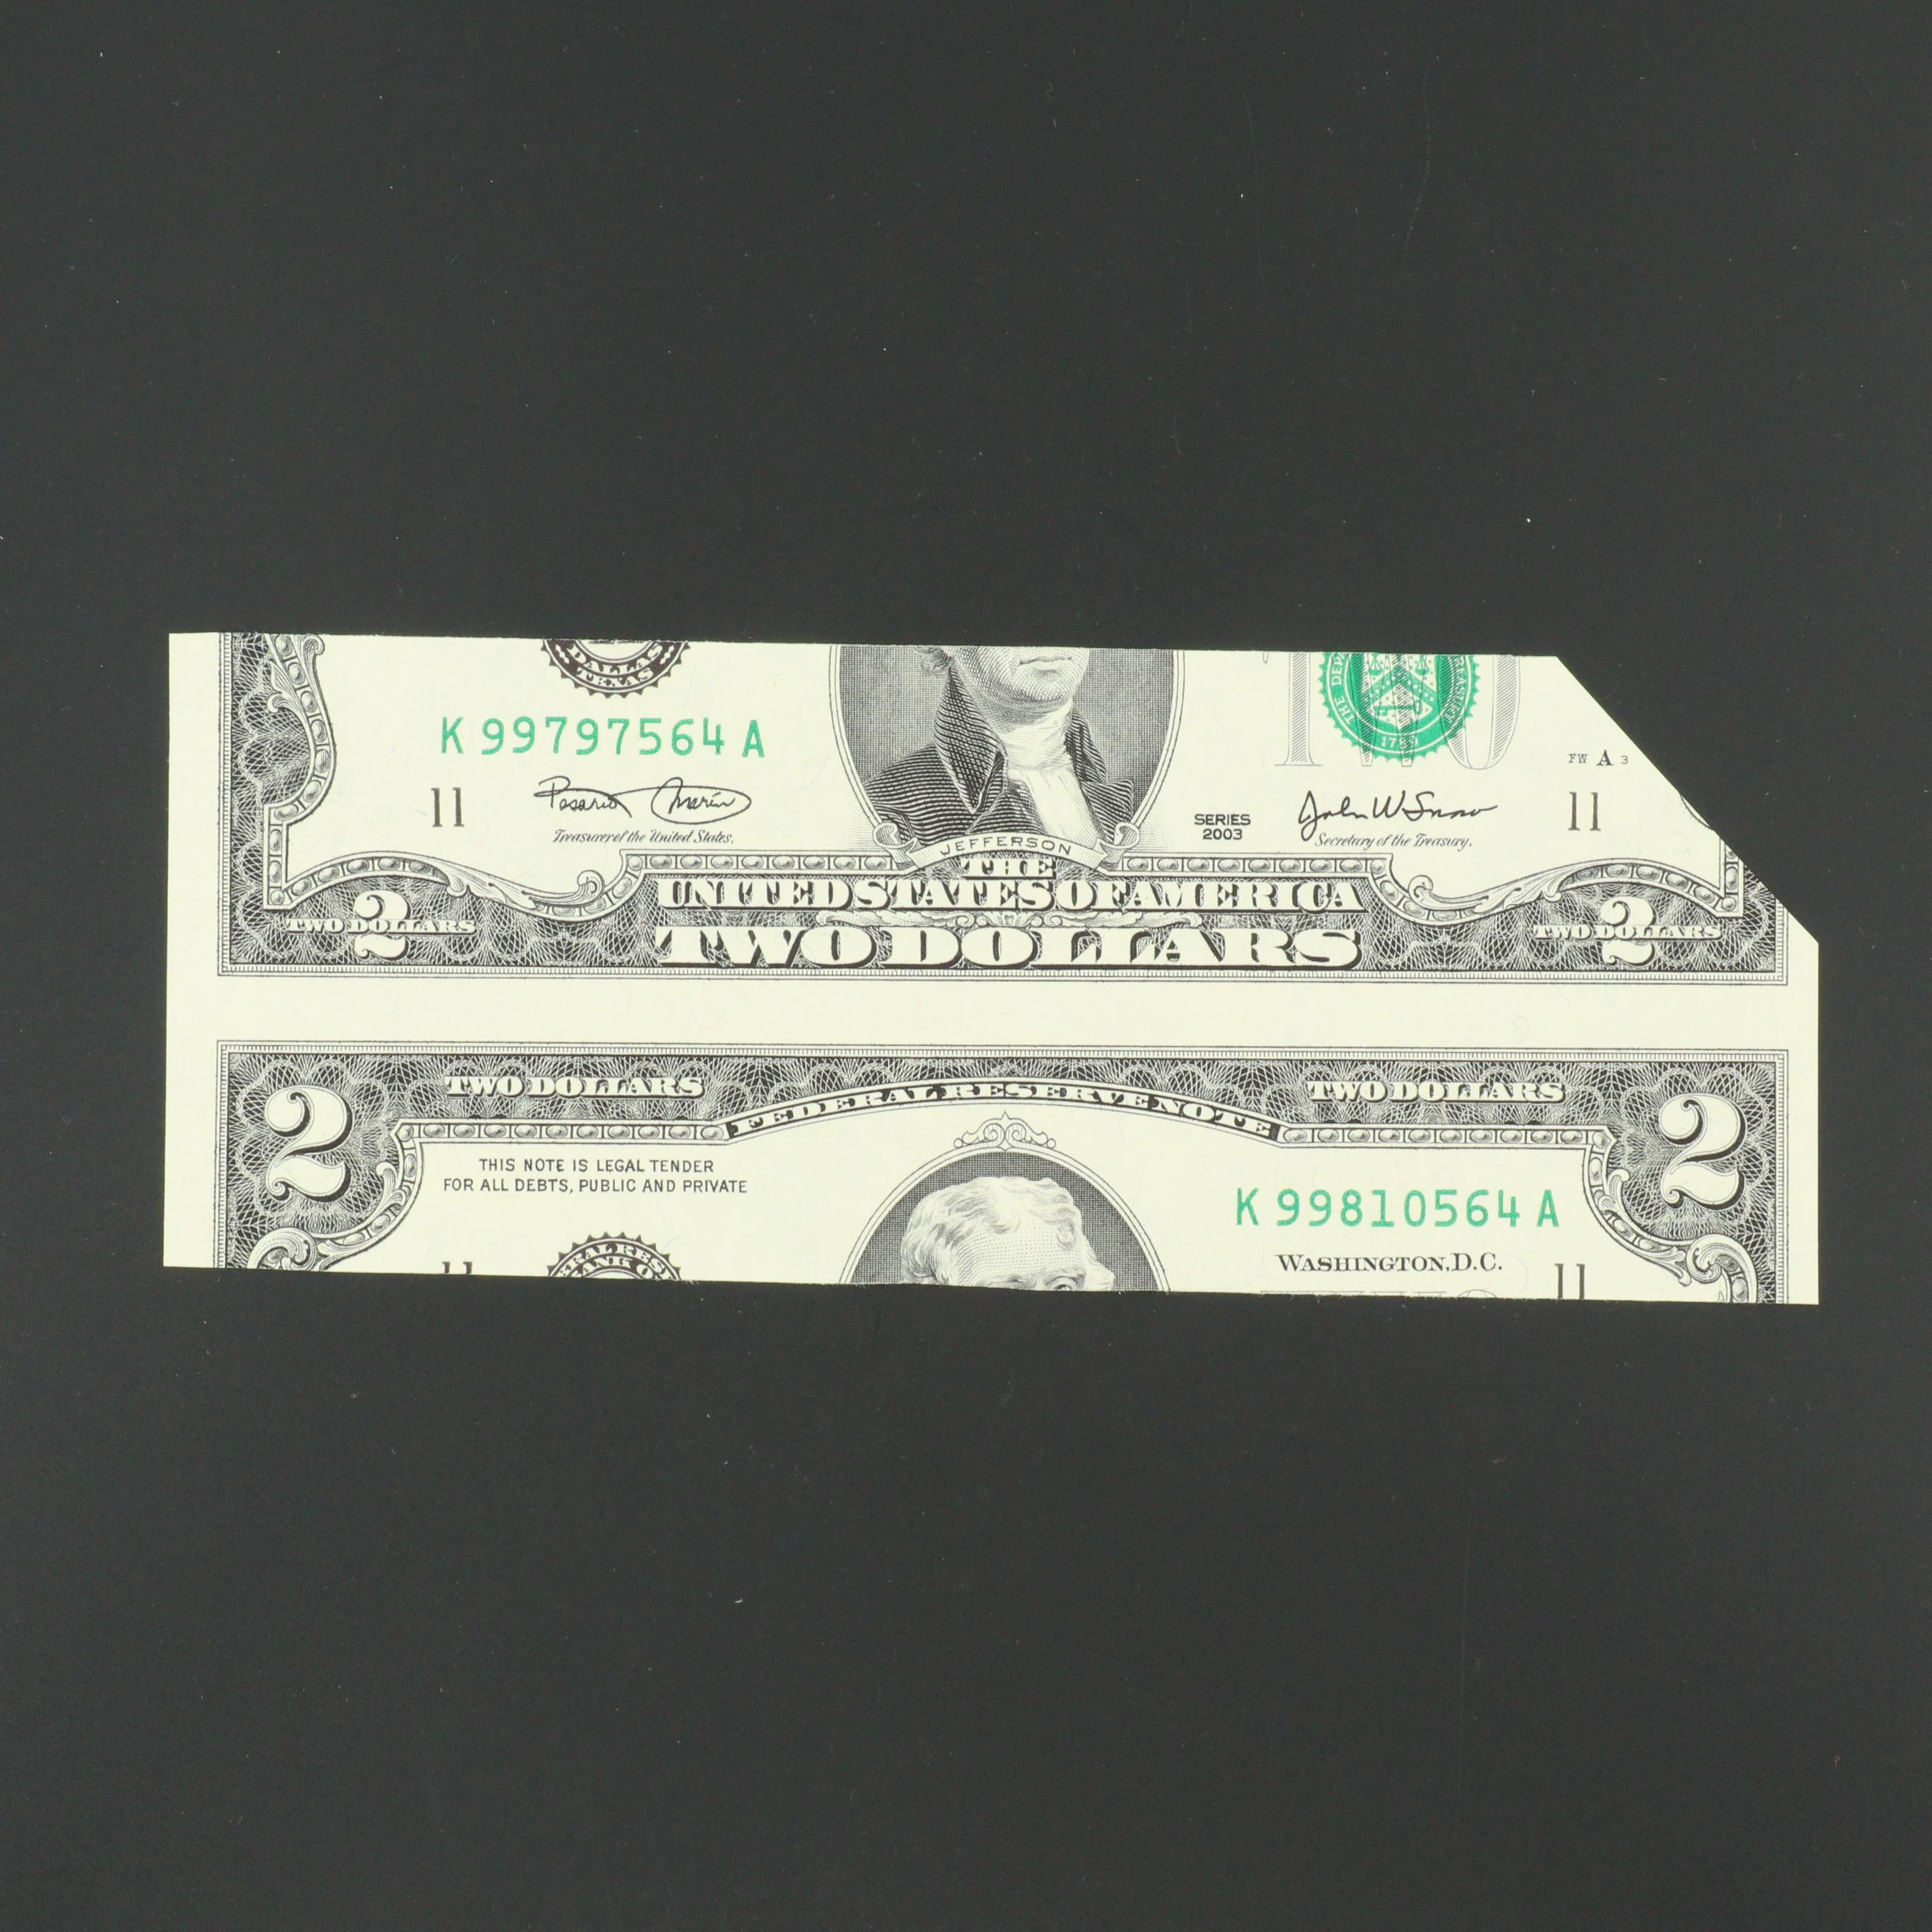 Series of 2003 $2 Federal Reserve Note with False Cut Error